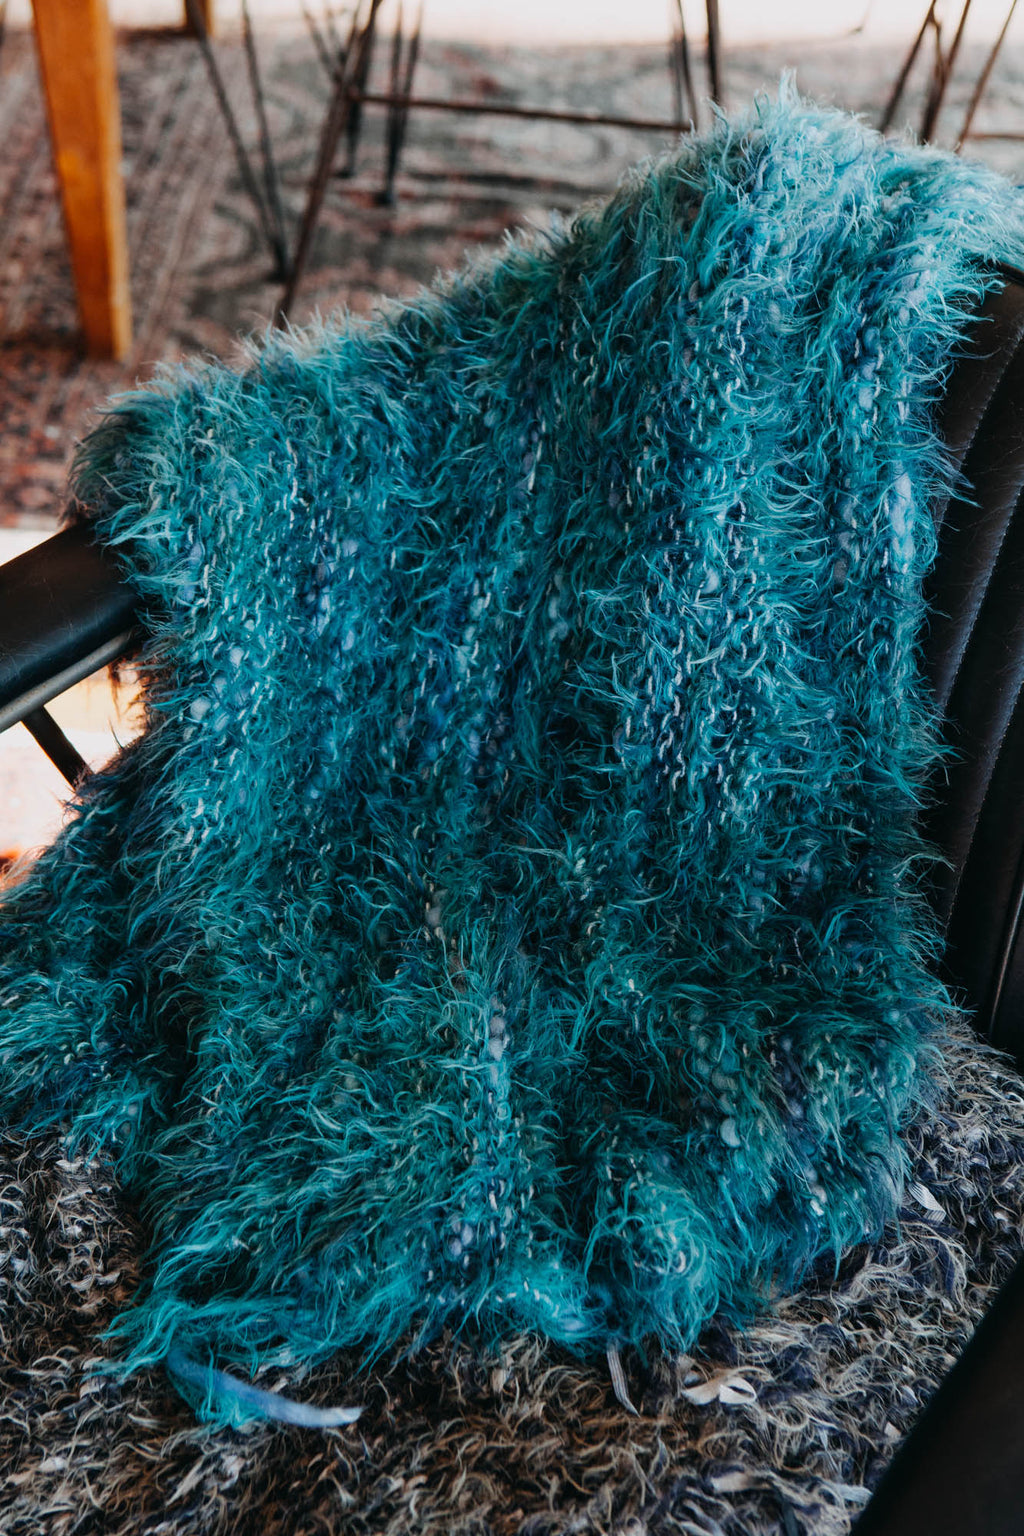 Unravelled Hygge Fantasia Blanket Knit Kit